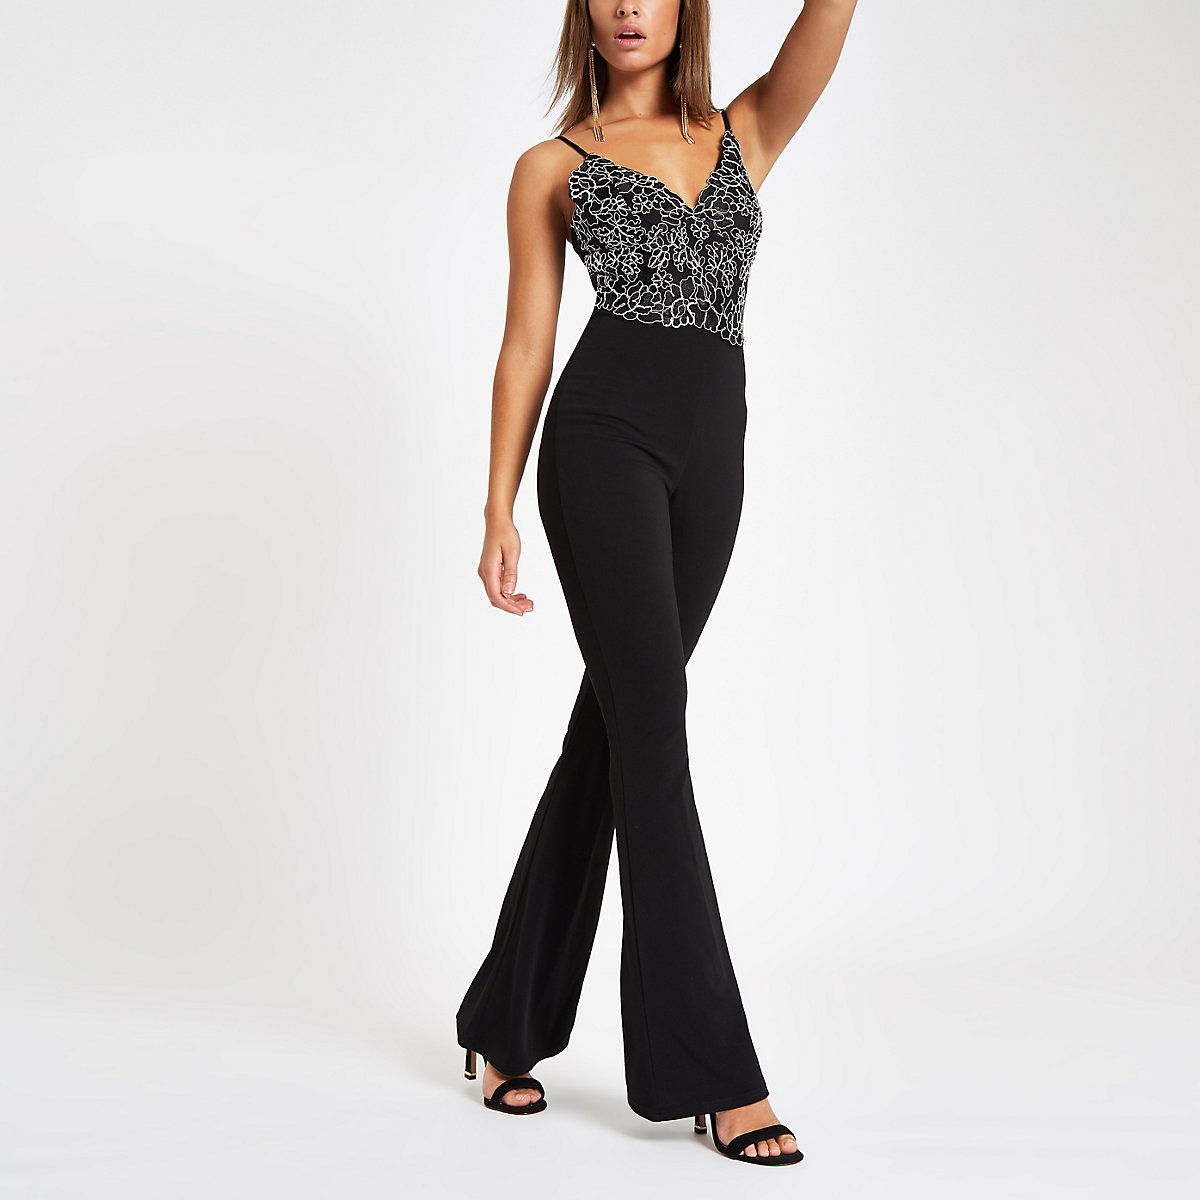 Black lace flared leg jumpsuit